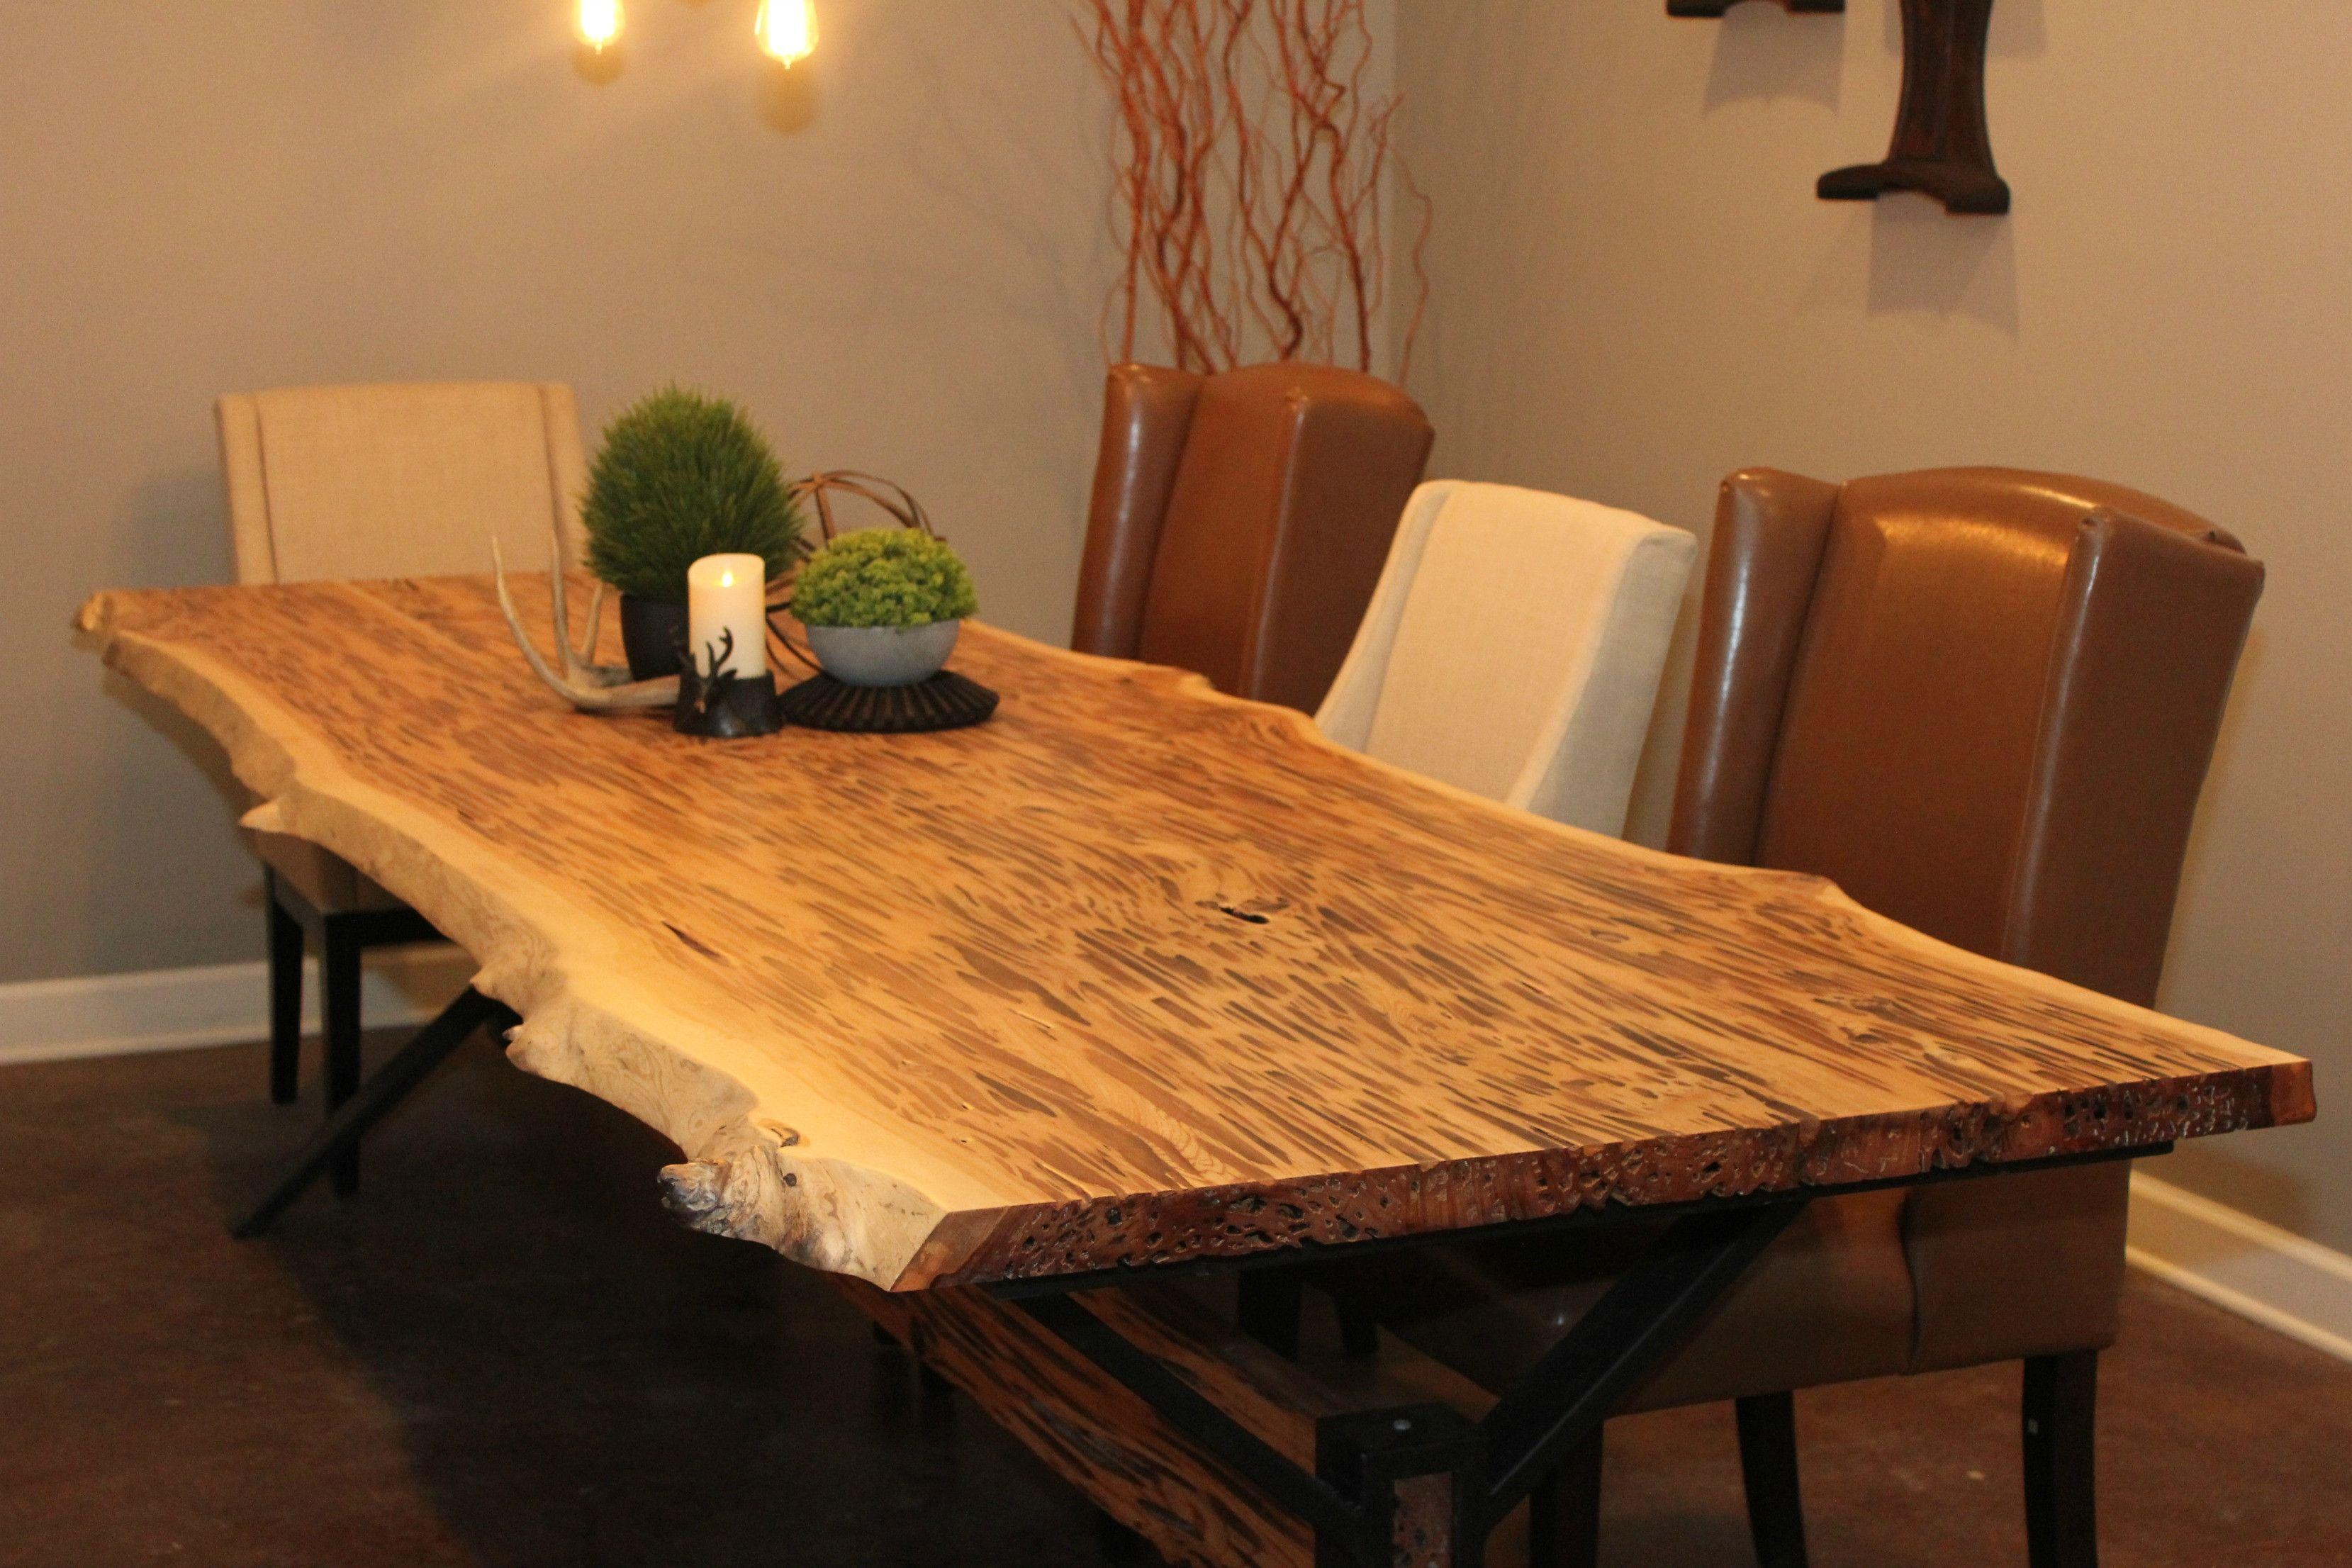 Rough Edge Plank Dining Table Dining Table Table Plank Table